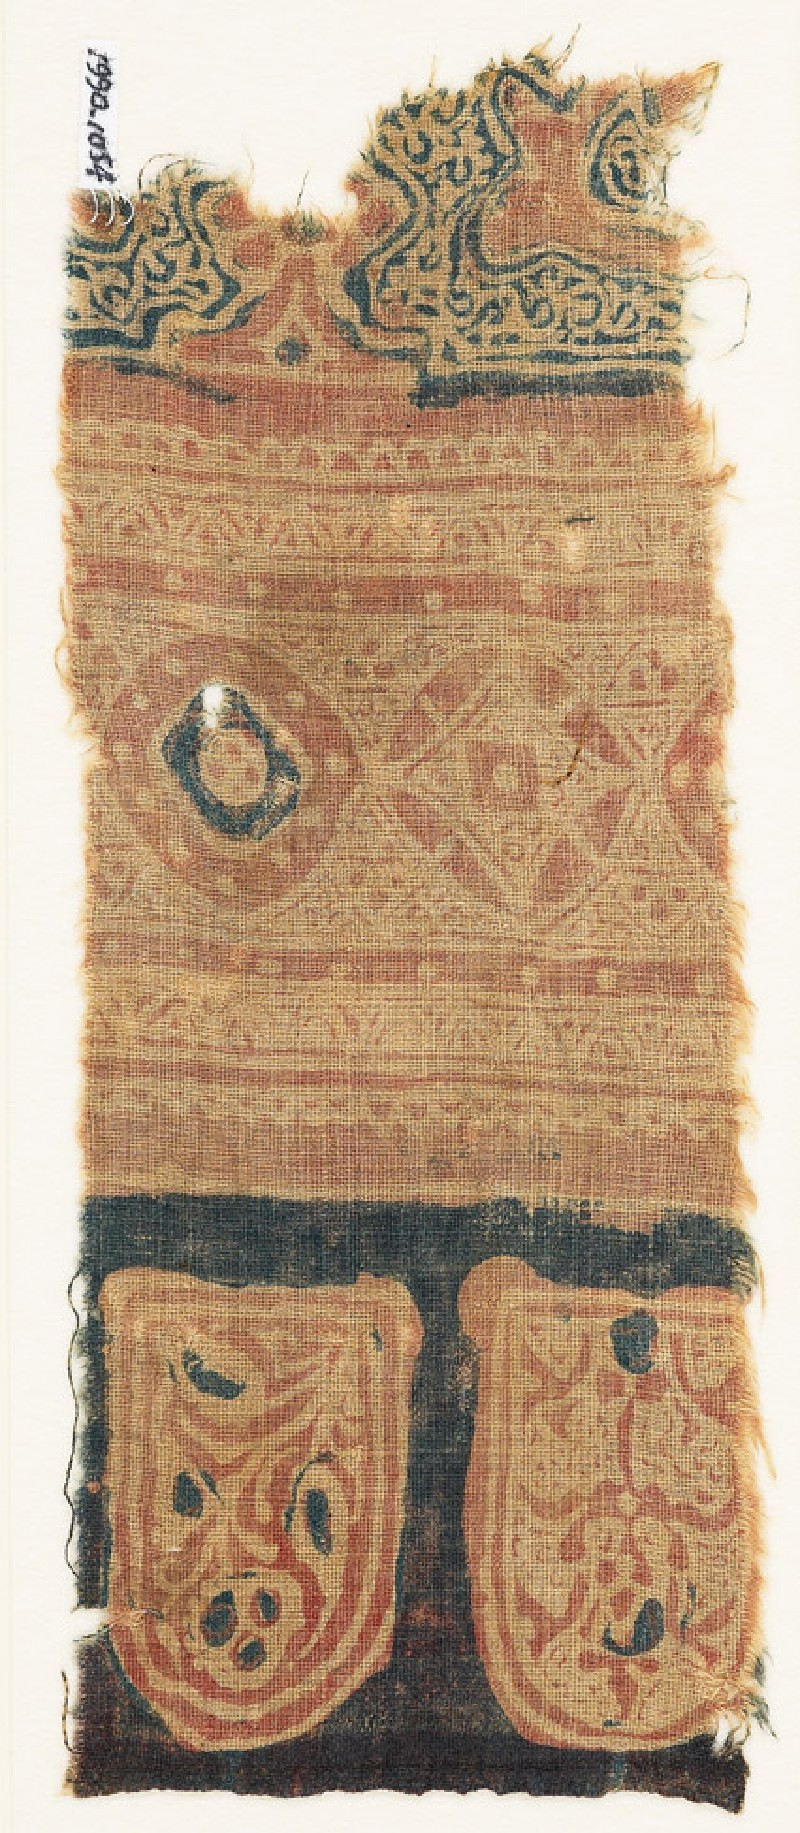 Textile fragment with tab-shapes and linked circles